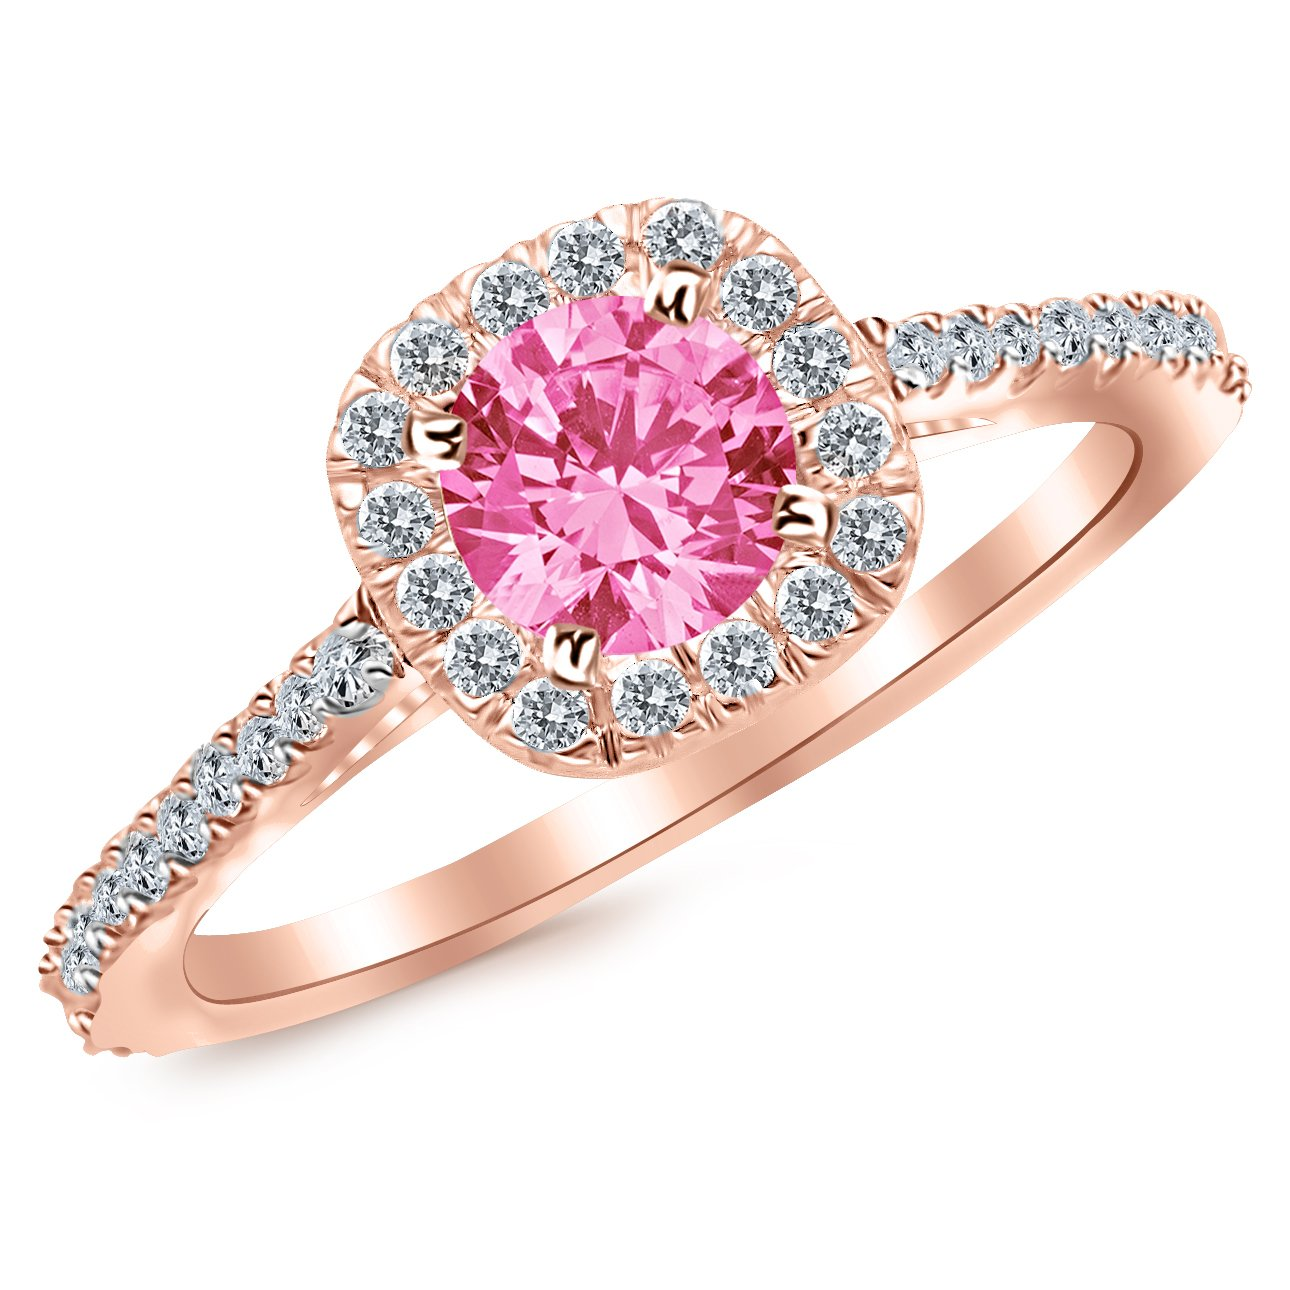 2.35 Carat 14K White Gold Gorgeous Classic Cushion Halo Style Diamond Engagement Ring with a 2 Carat Natural Pink Sapphire Center (Heirloom Quality)